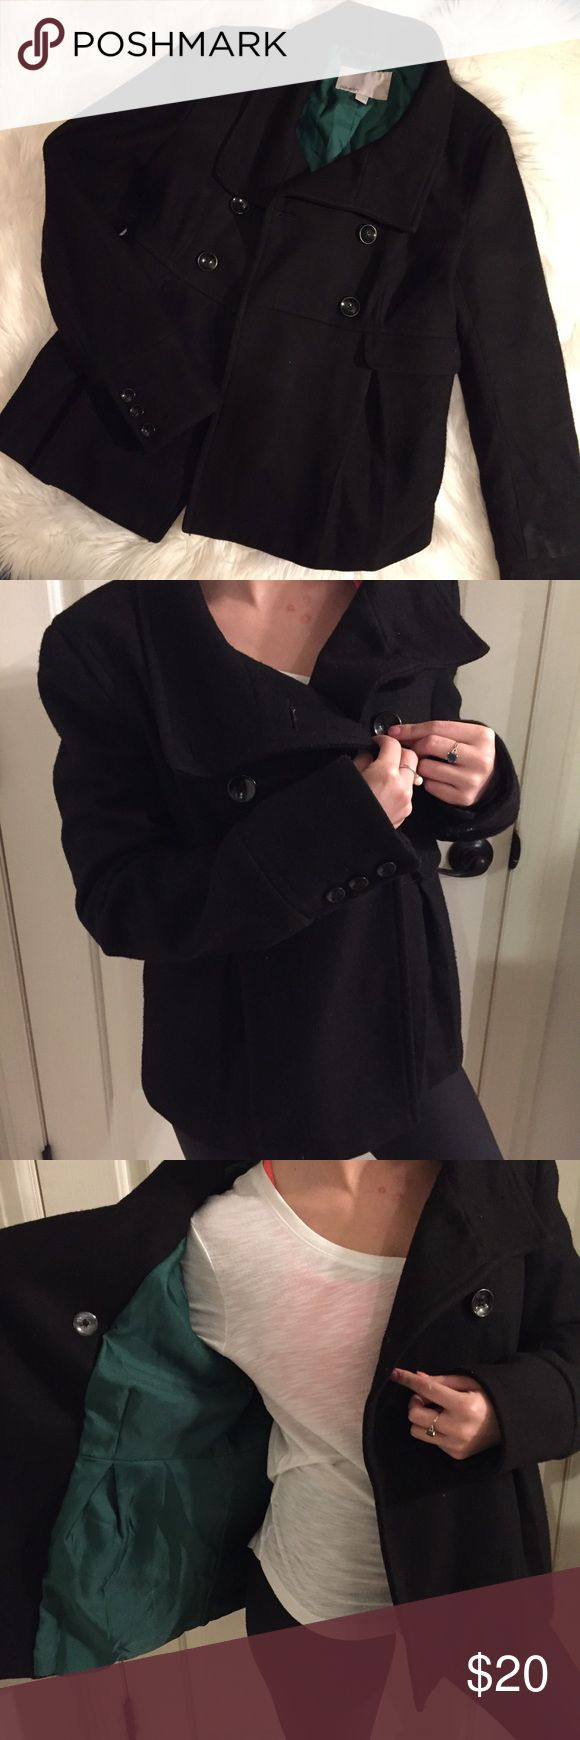 Old Navy Pea Coat - Small Old Navy Black Pea Coat, Women's Small, Excellent Condition. Fully lined. Cute details in stitching and buttons. Longer sleeve. Side pockets. Smoke-free home. Old Navy Jackets & Coats Pea Coats